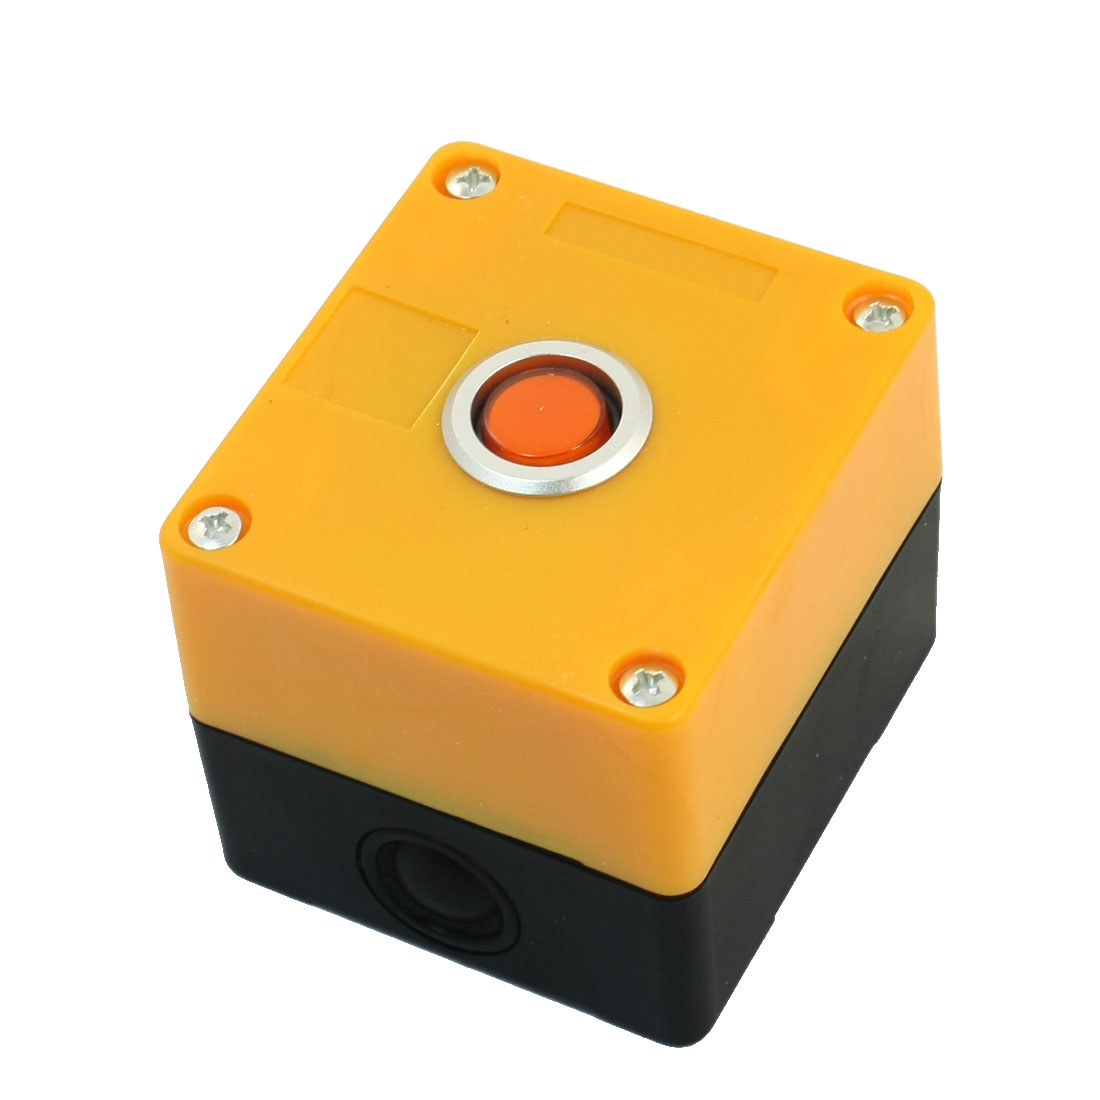 AC 220V 5A SPDT 3Pin 1NO 1NC Self-Locking Orange Button Rectangle Yellow Plastic Case Push Button Station Switch Control Box